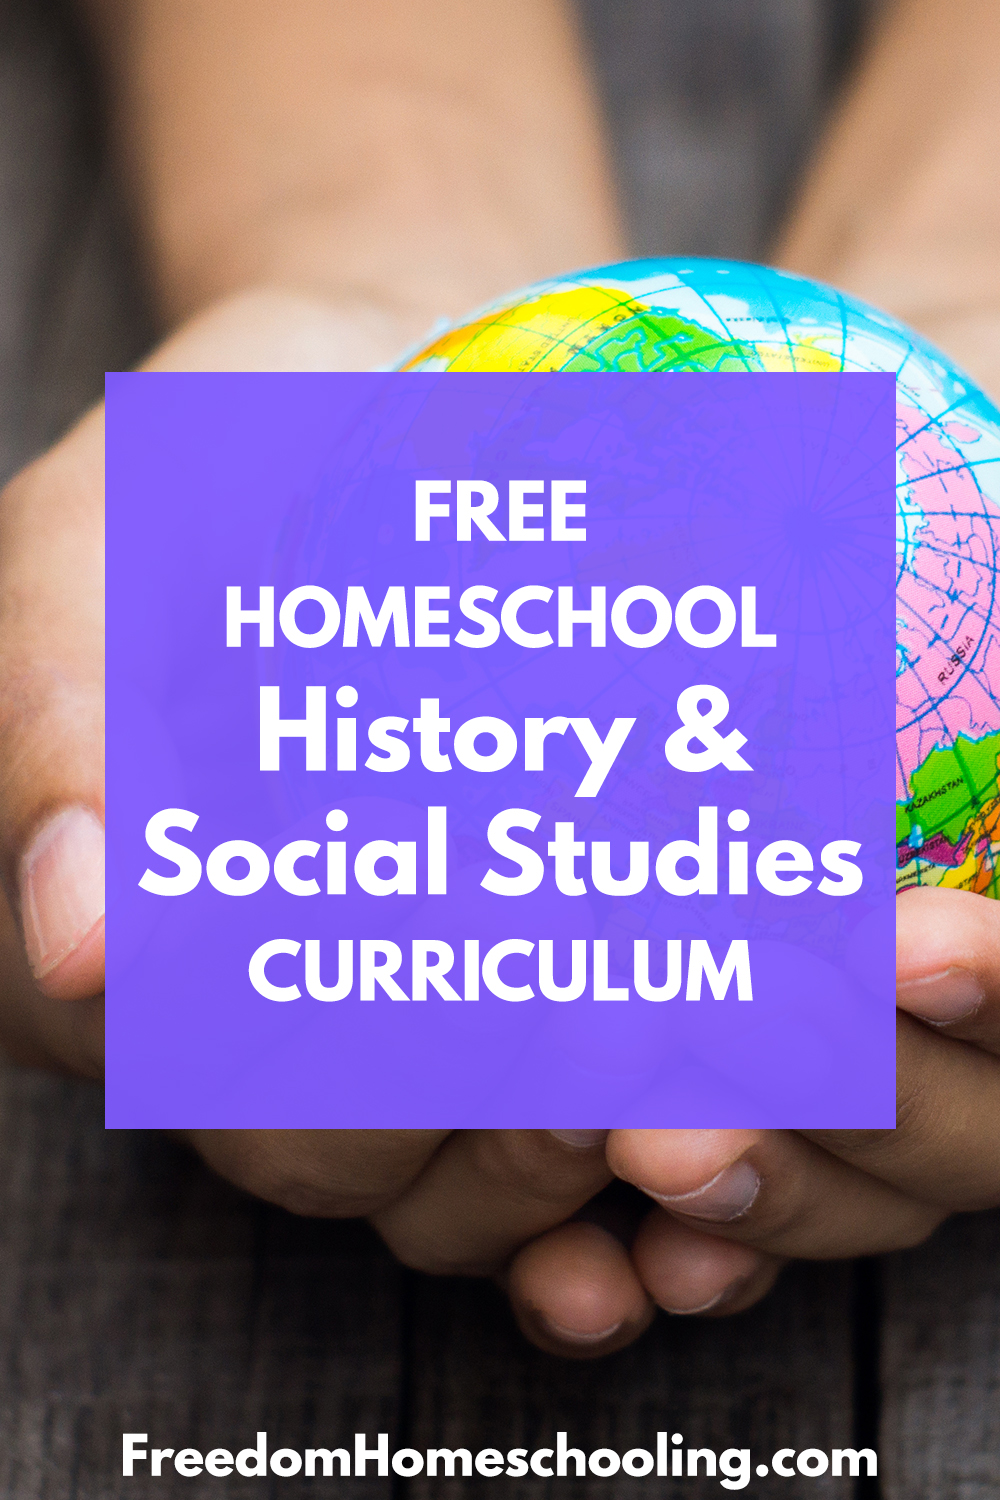 hight resolution of Freedom Homeschooling   Free Homeschool History \u0026 Social Studies Curriculum